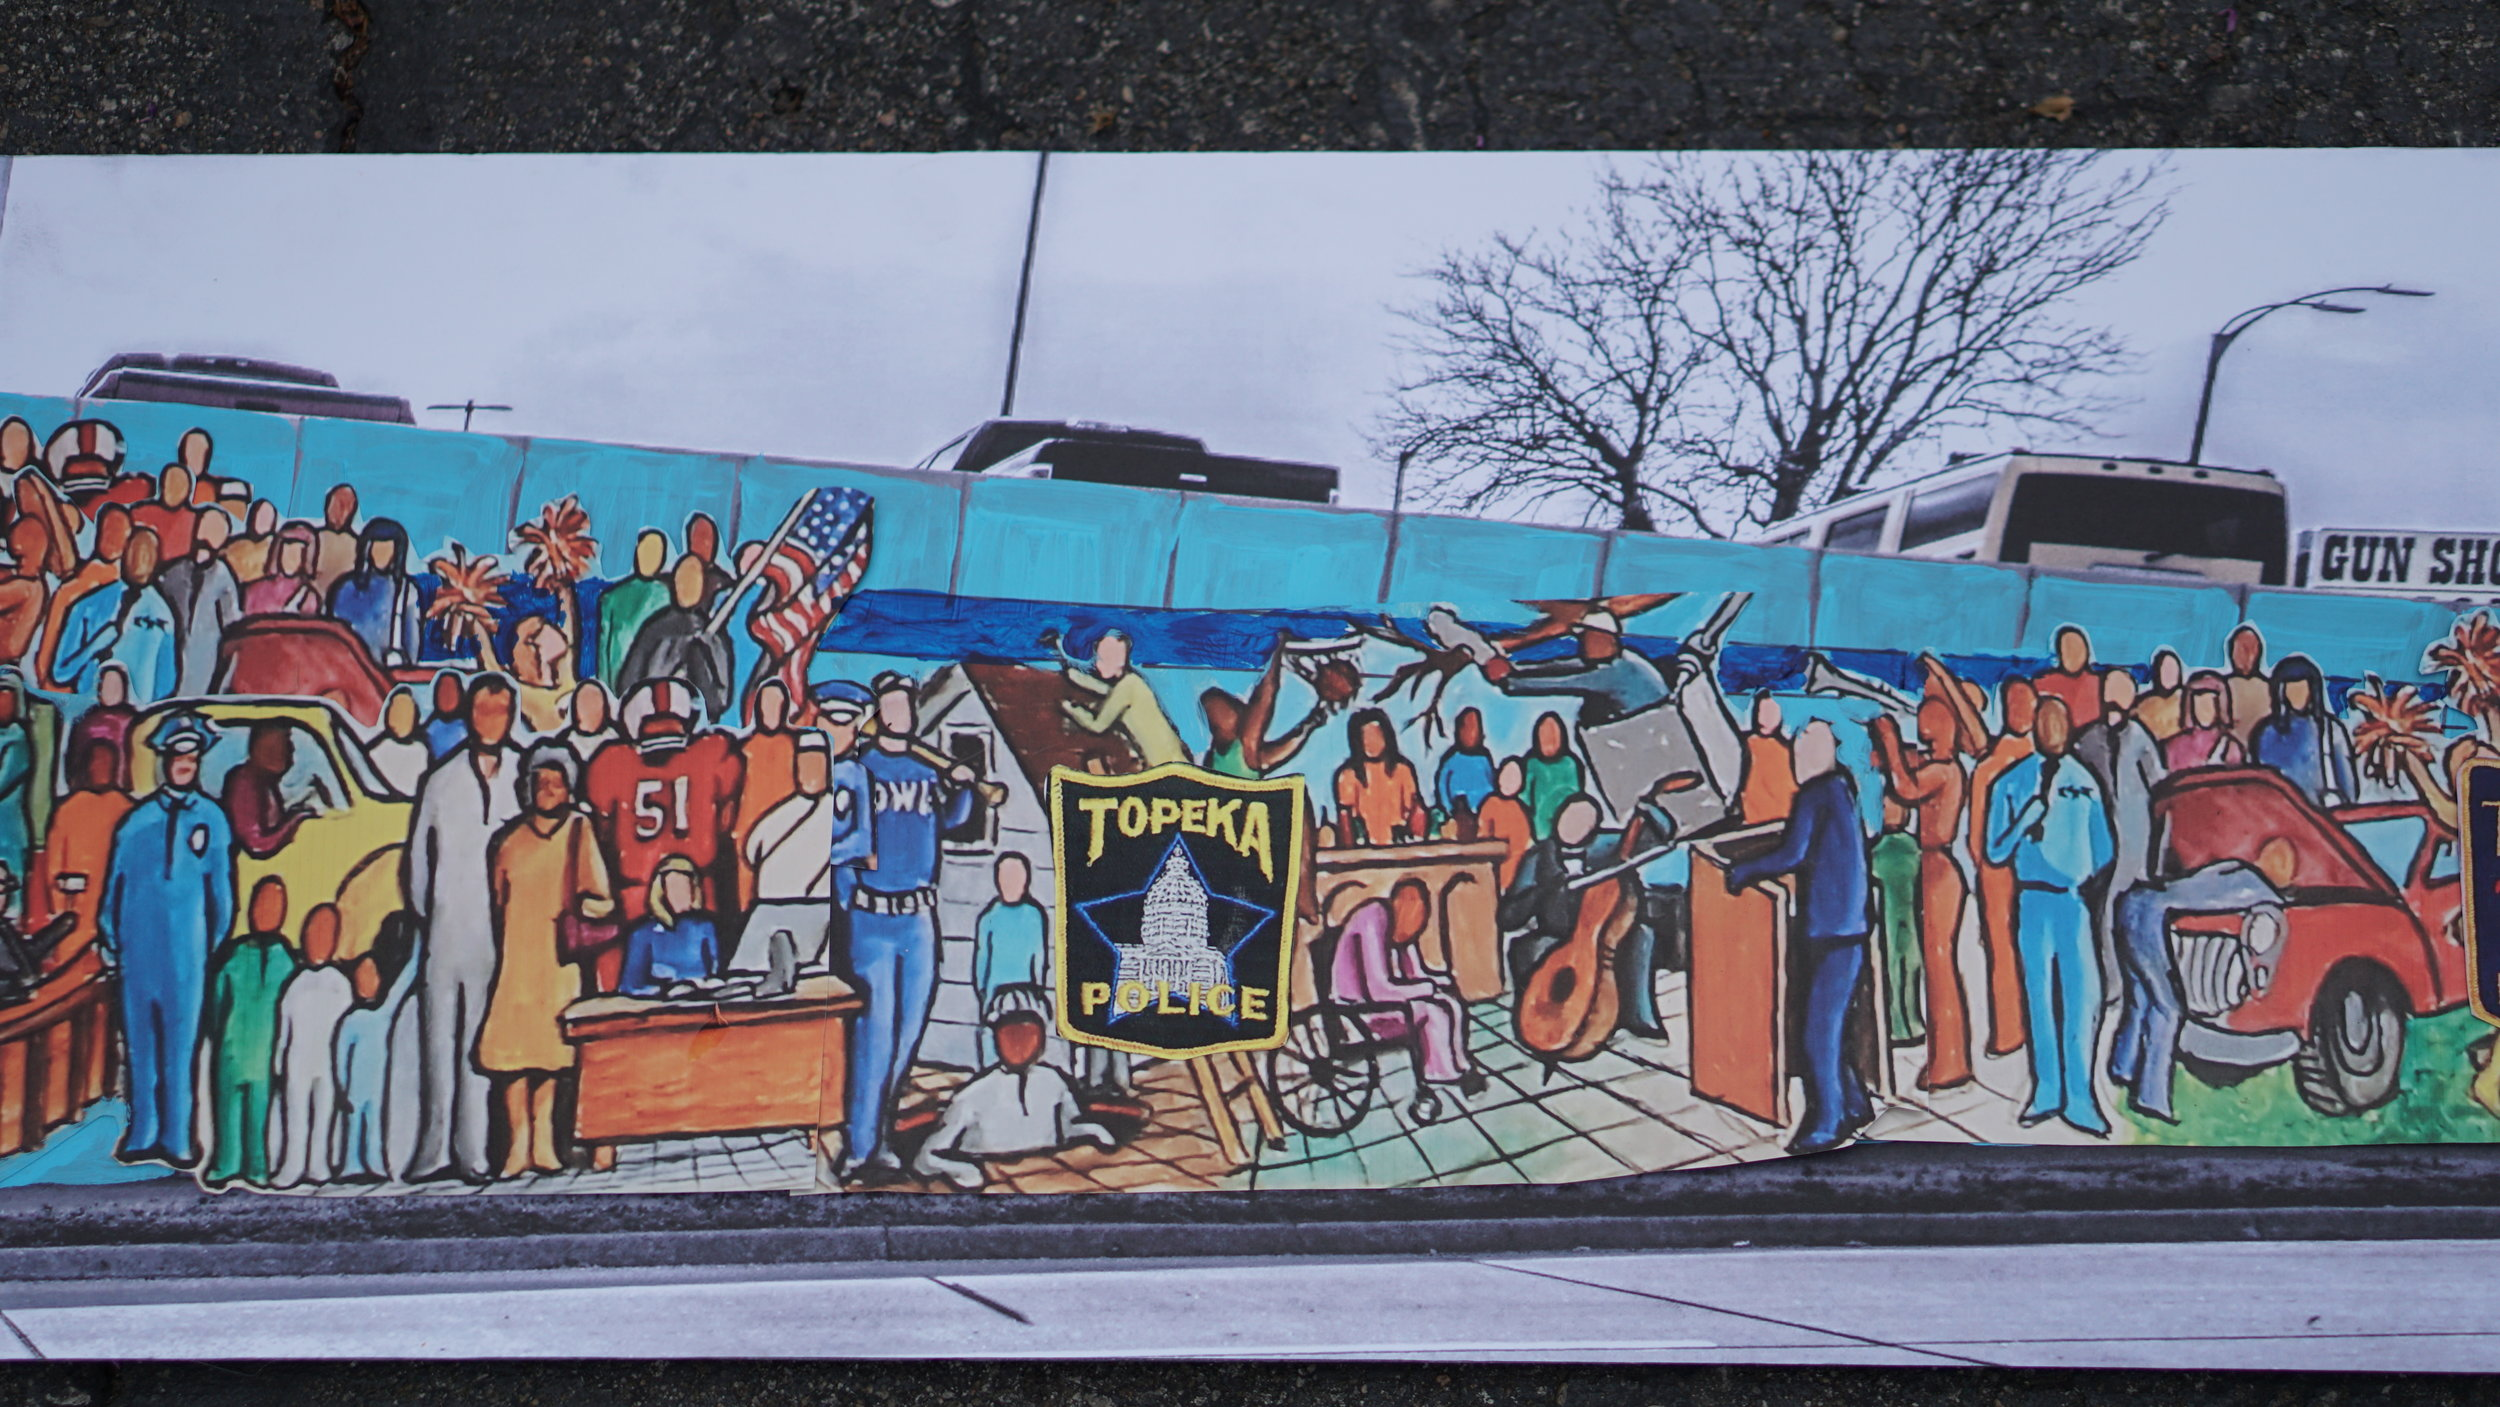 Inspiration for the design of this mural comes from a committee which includes Topeka Police Department staff, community members and a team of local artists. -